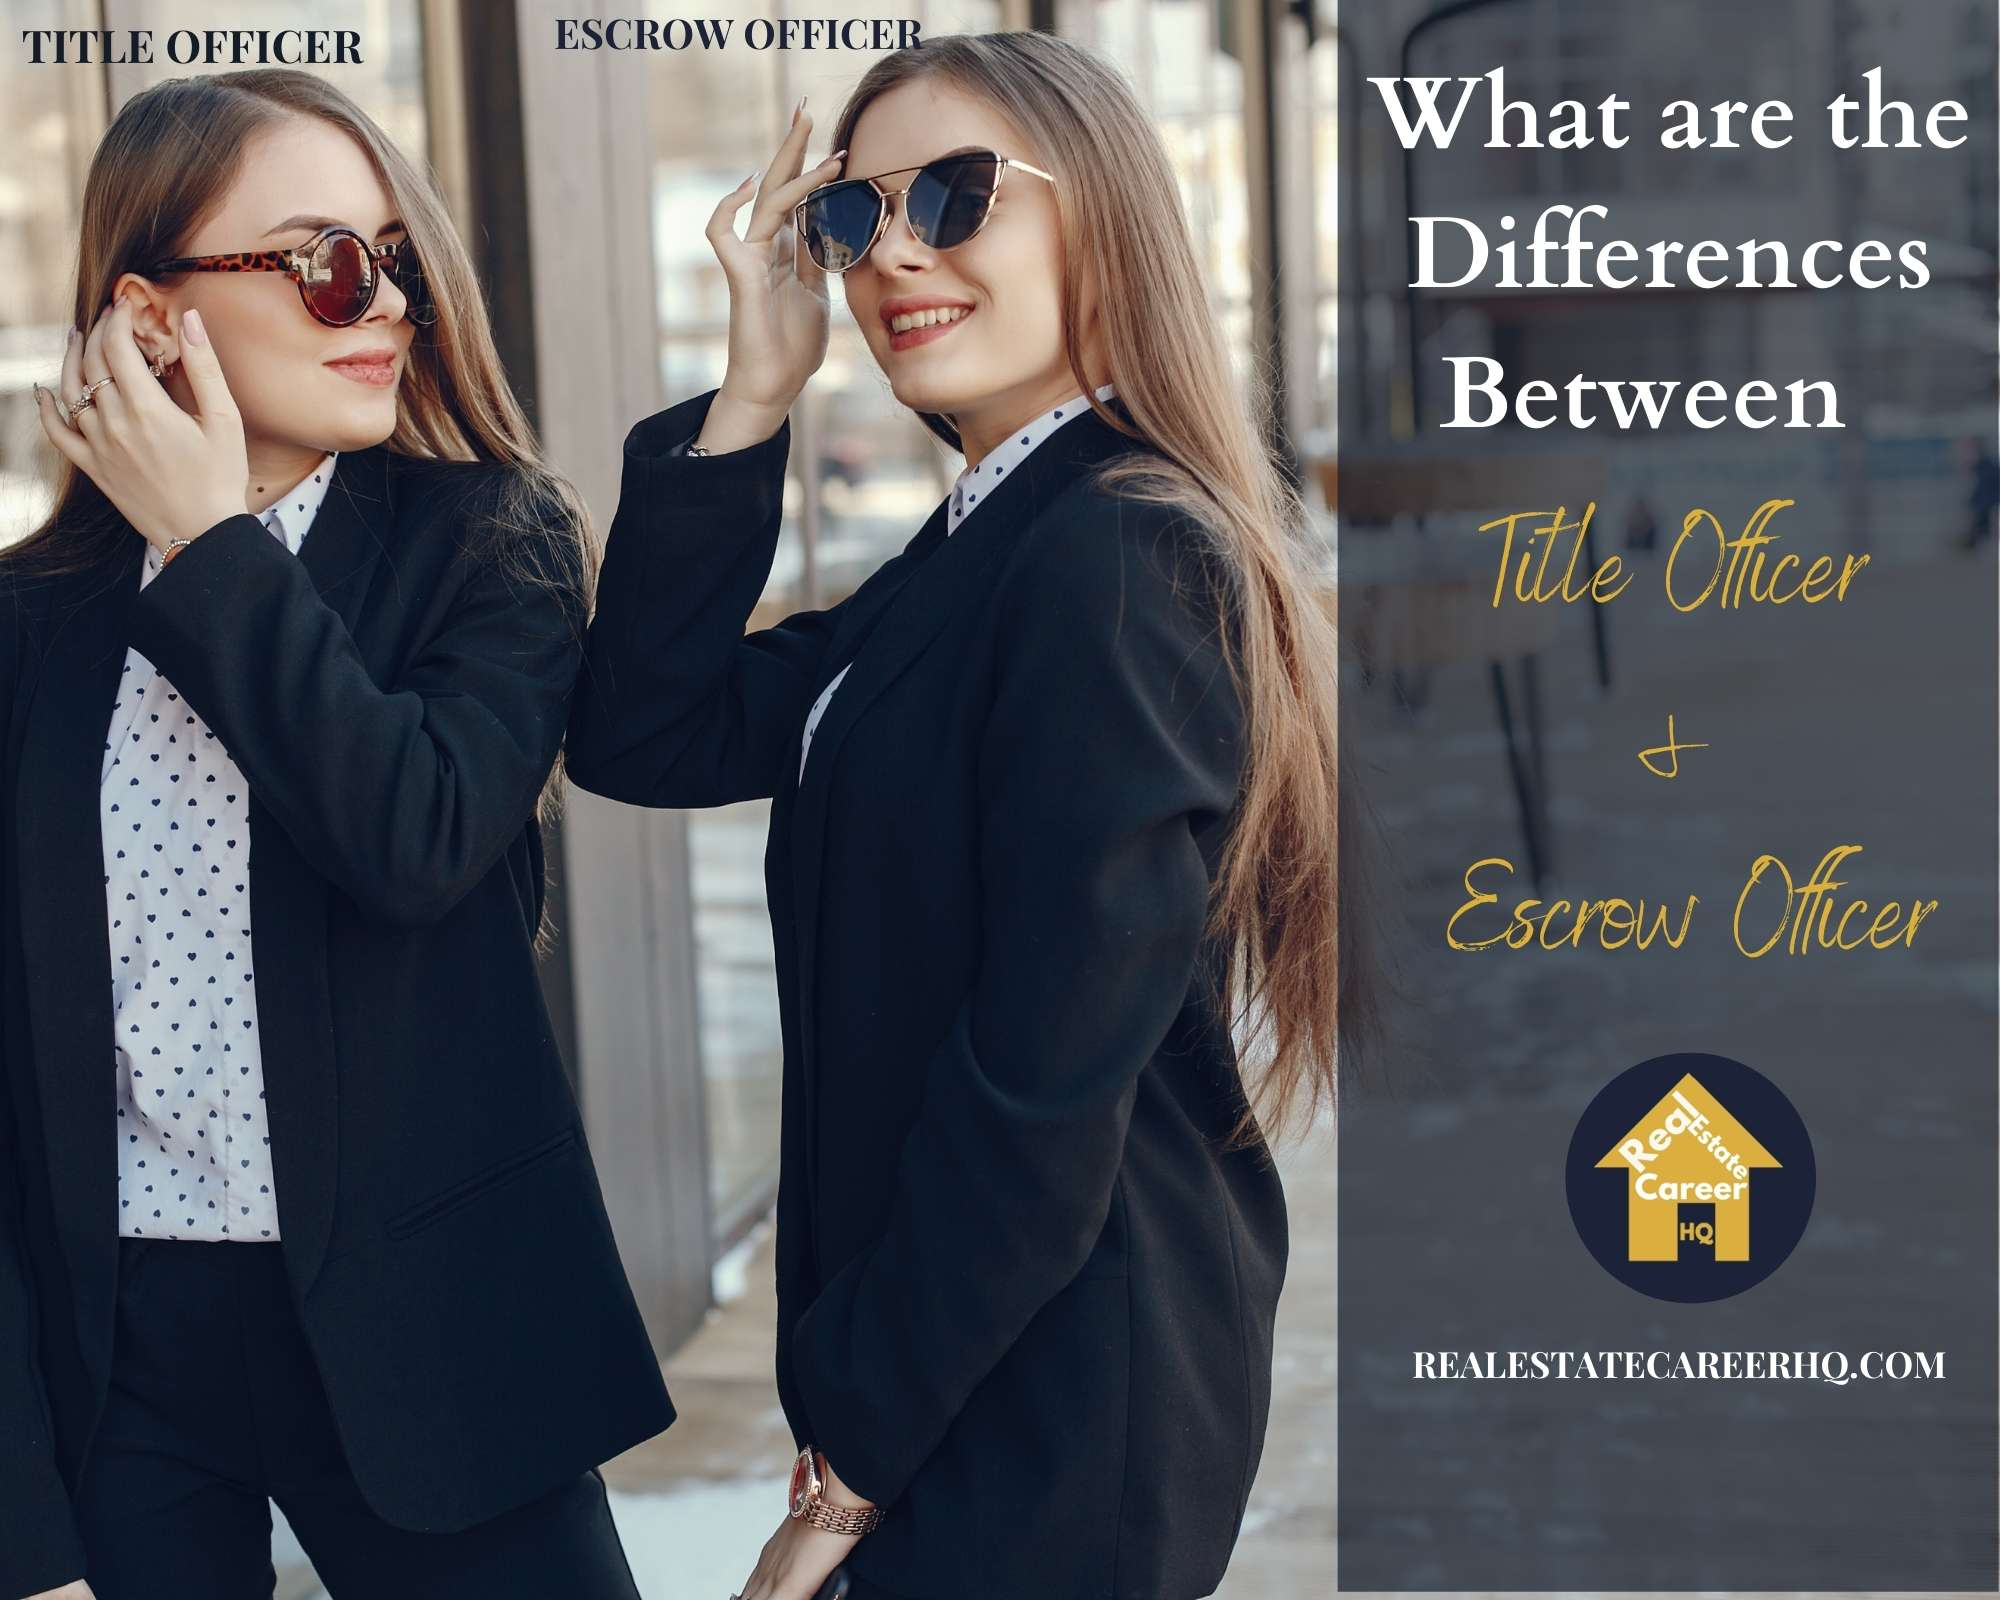 Differences between a title officer and an escrow officer